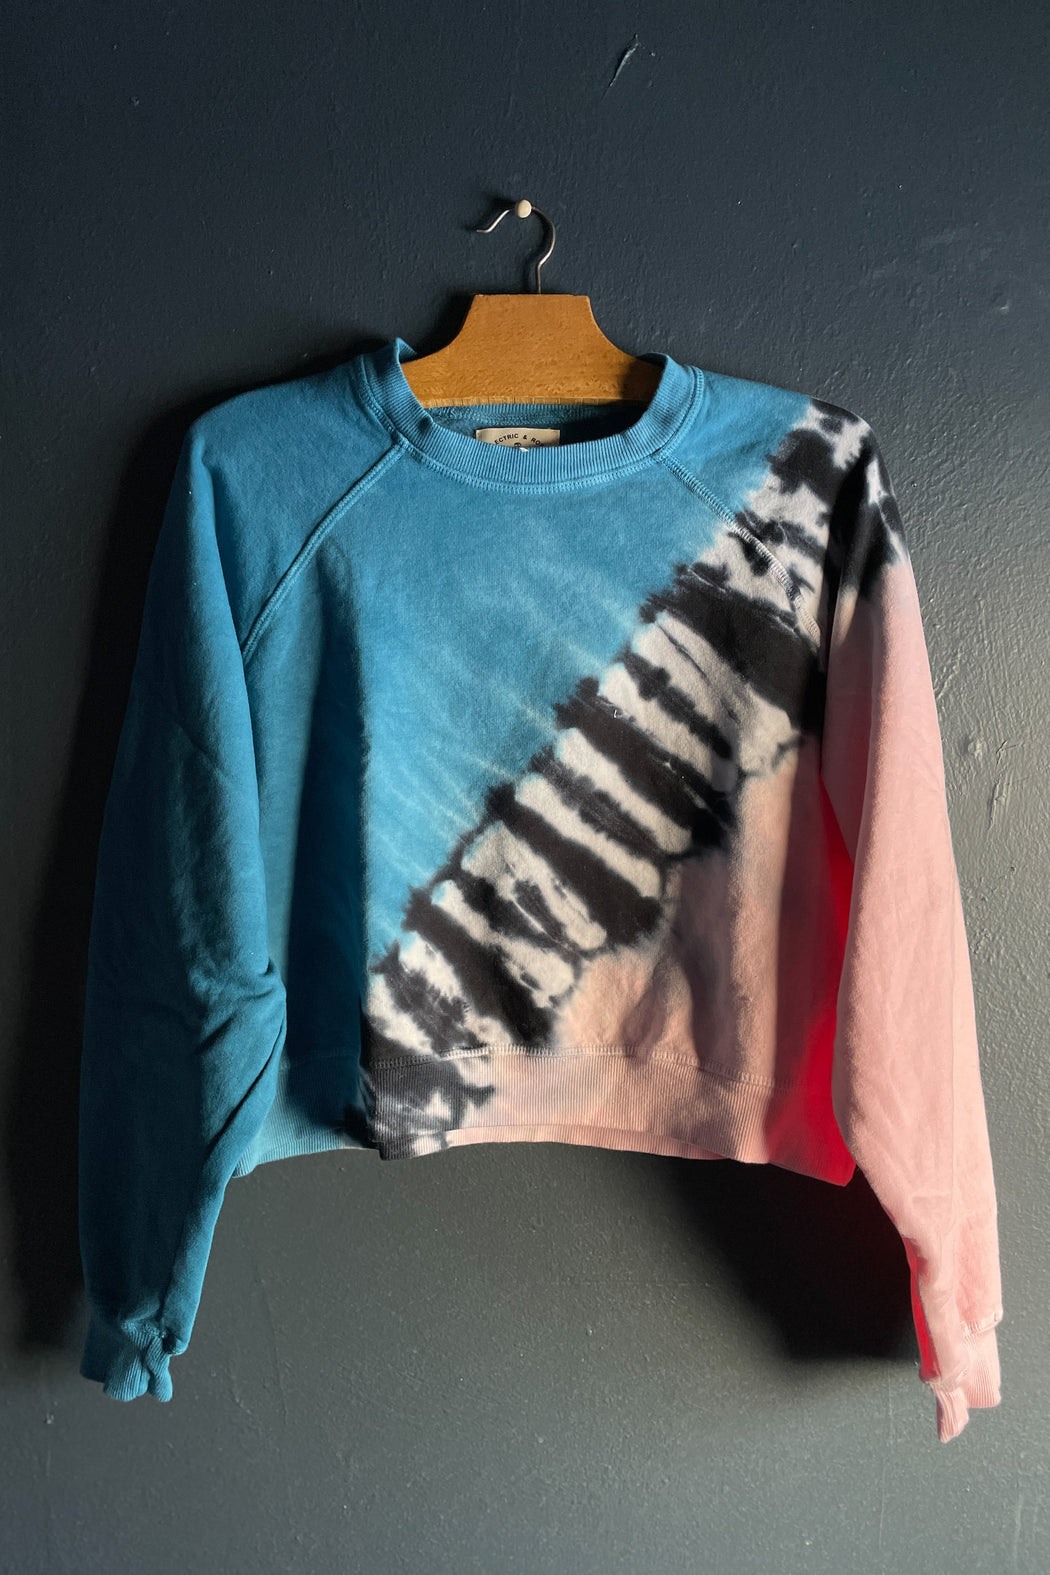 Electric & Rose Ronan Pullover in Crest Blue, Onyx and Camille